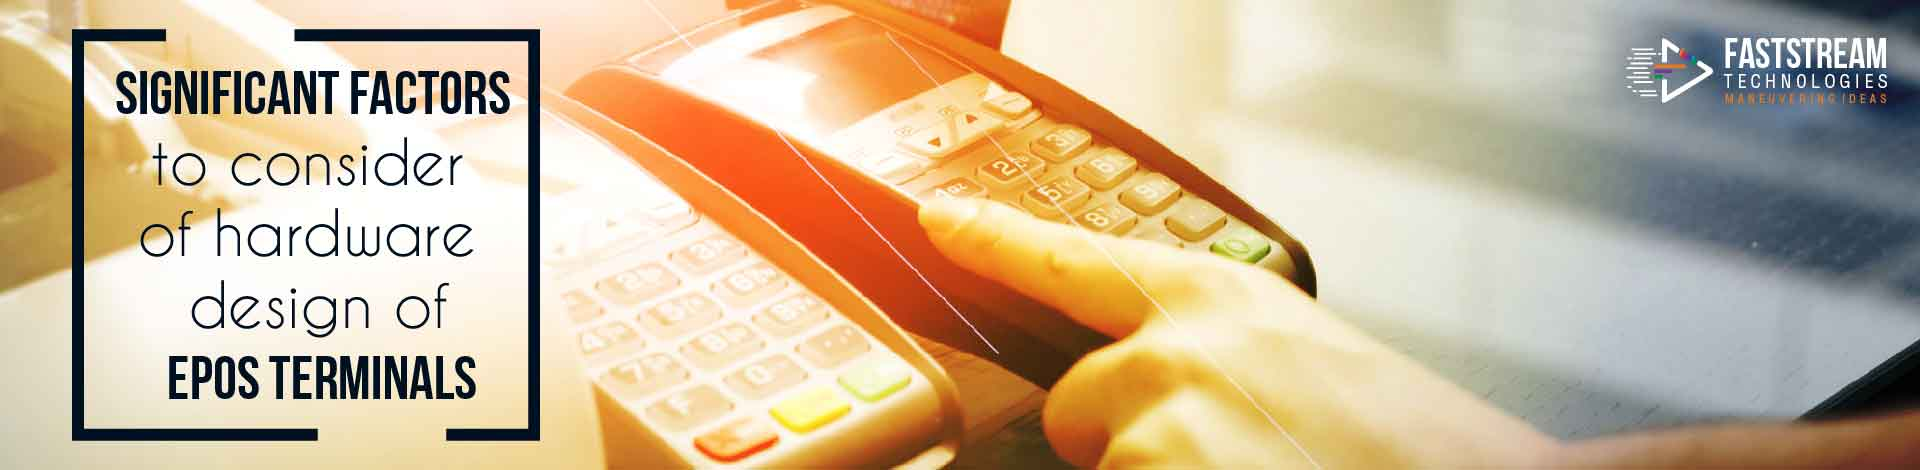 Significant factors to consider of hardware design of EPOS terminals